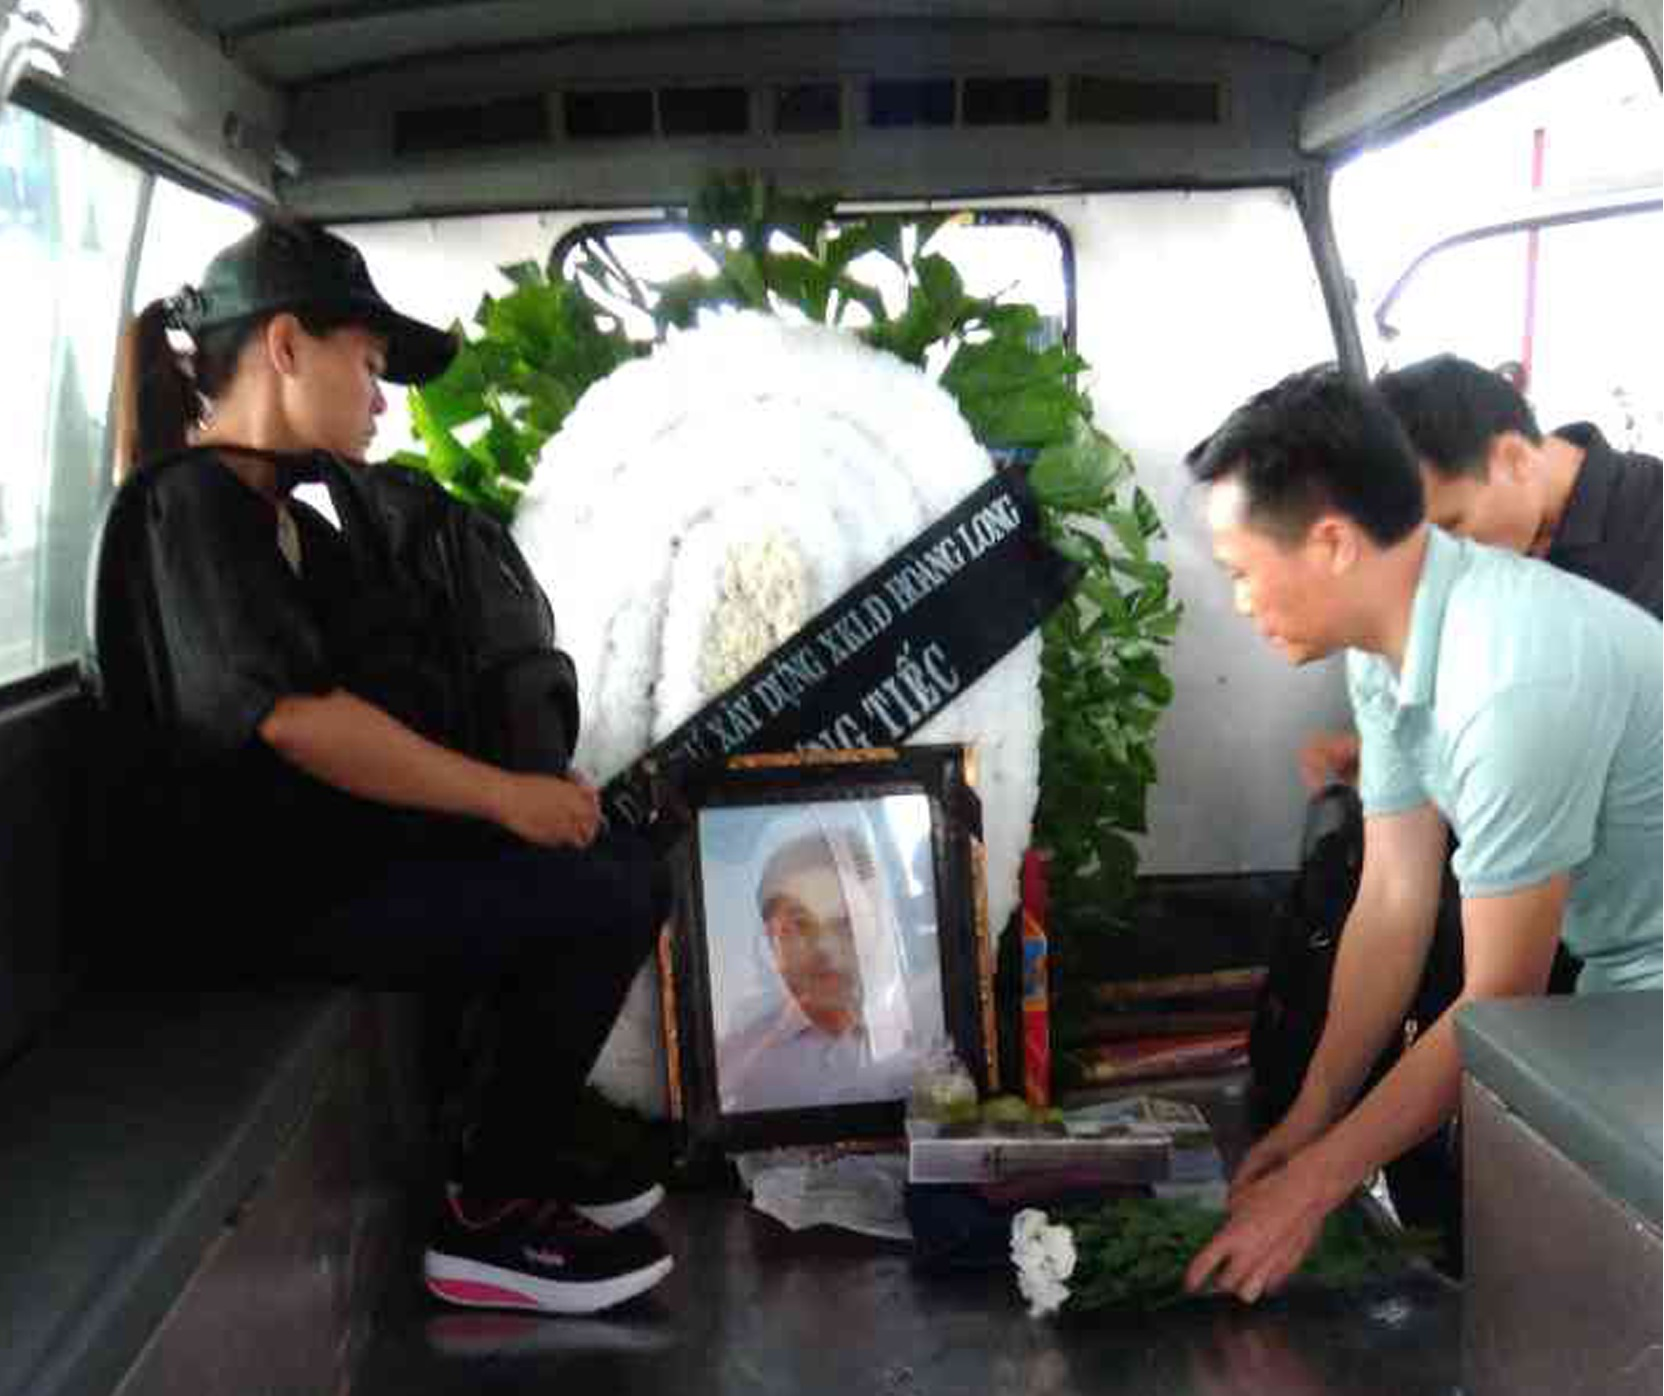 Nguyen Quoc Phi's sister carried his ossuary in the black backpack.